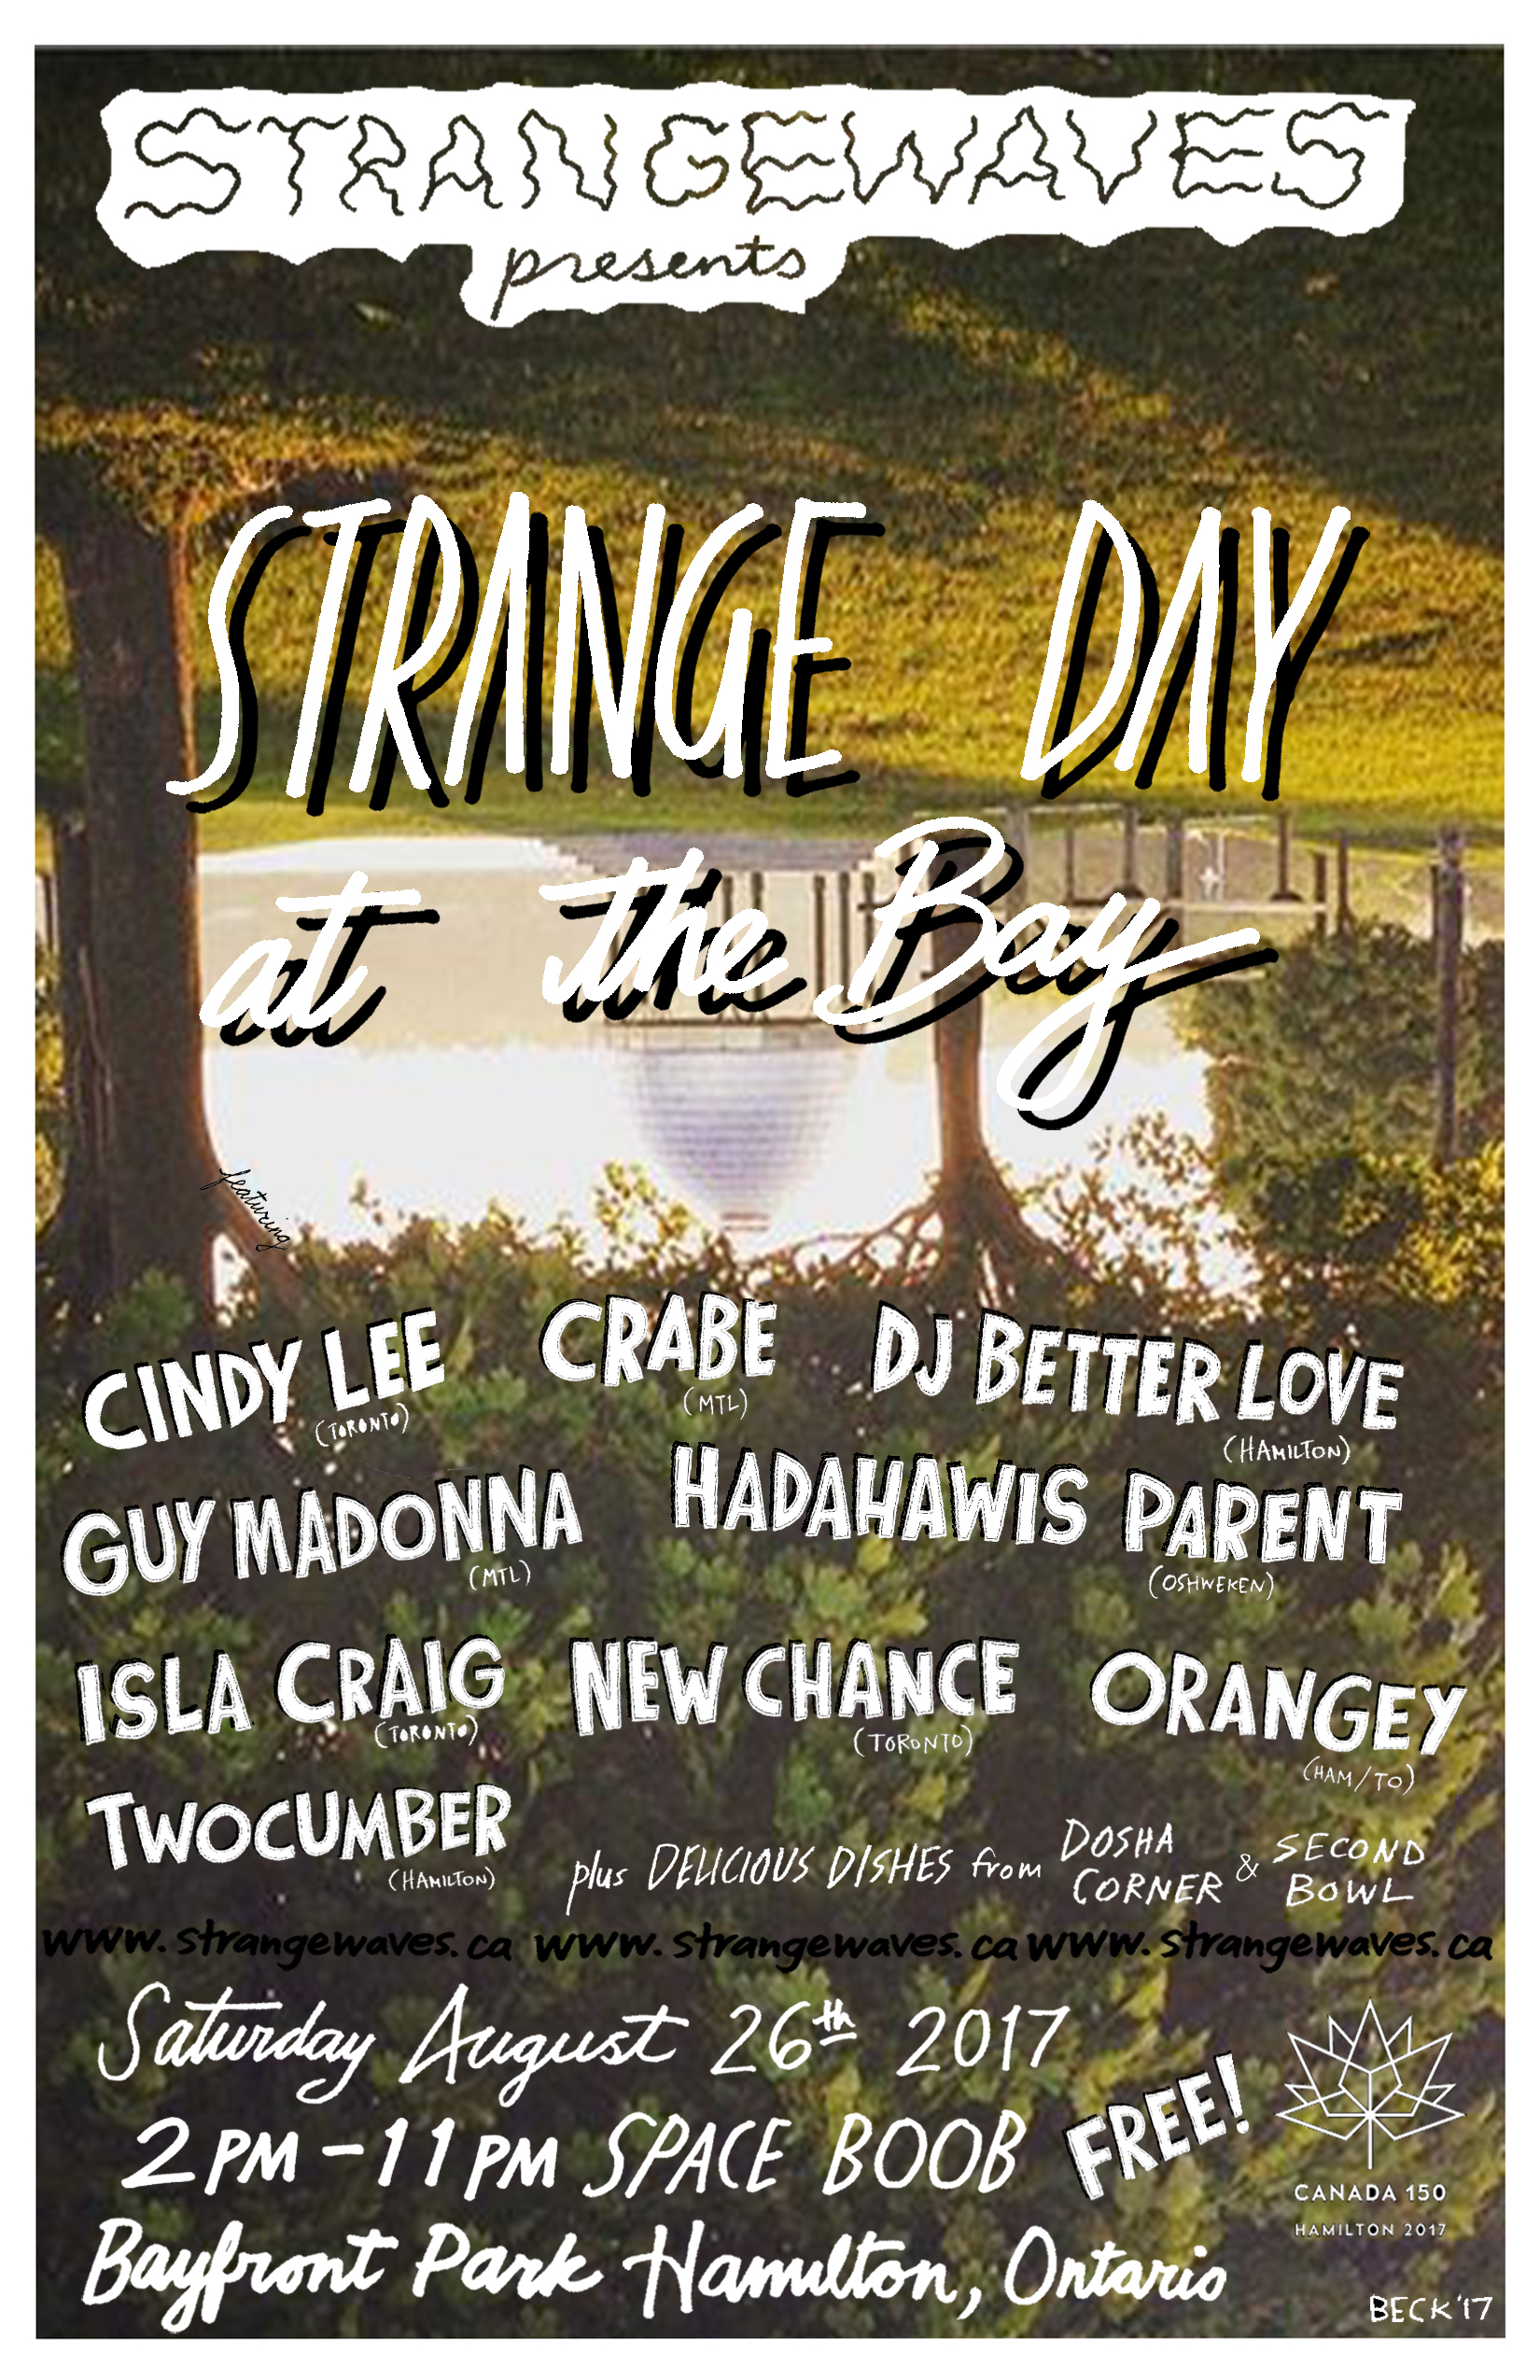 Strange Day at the Bay 2017